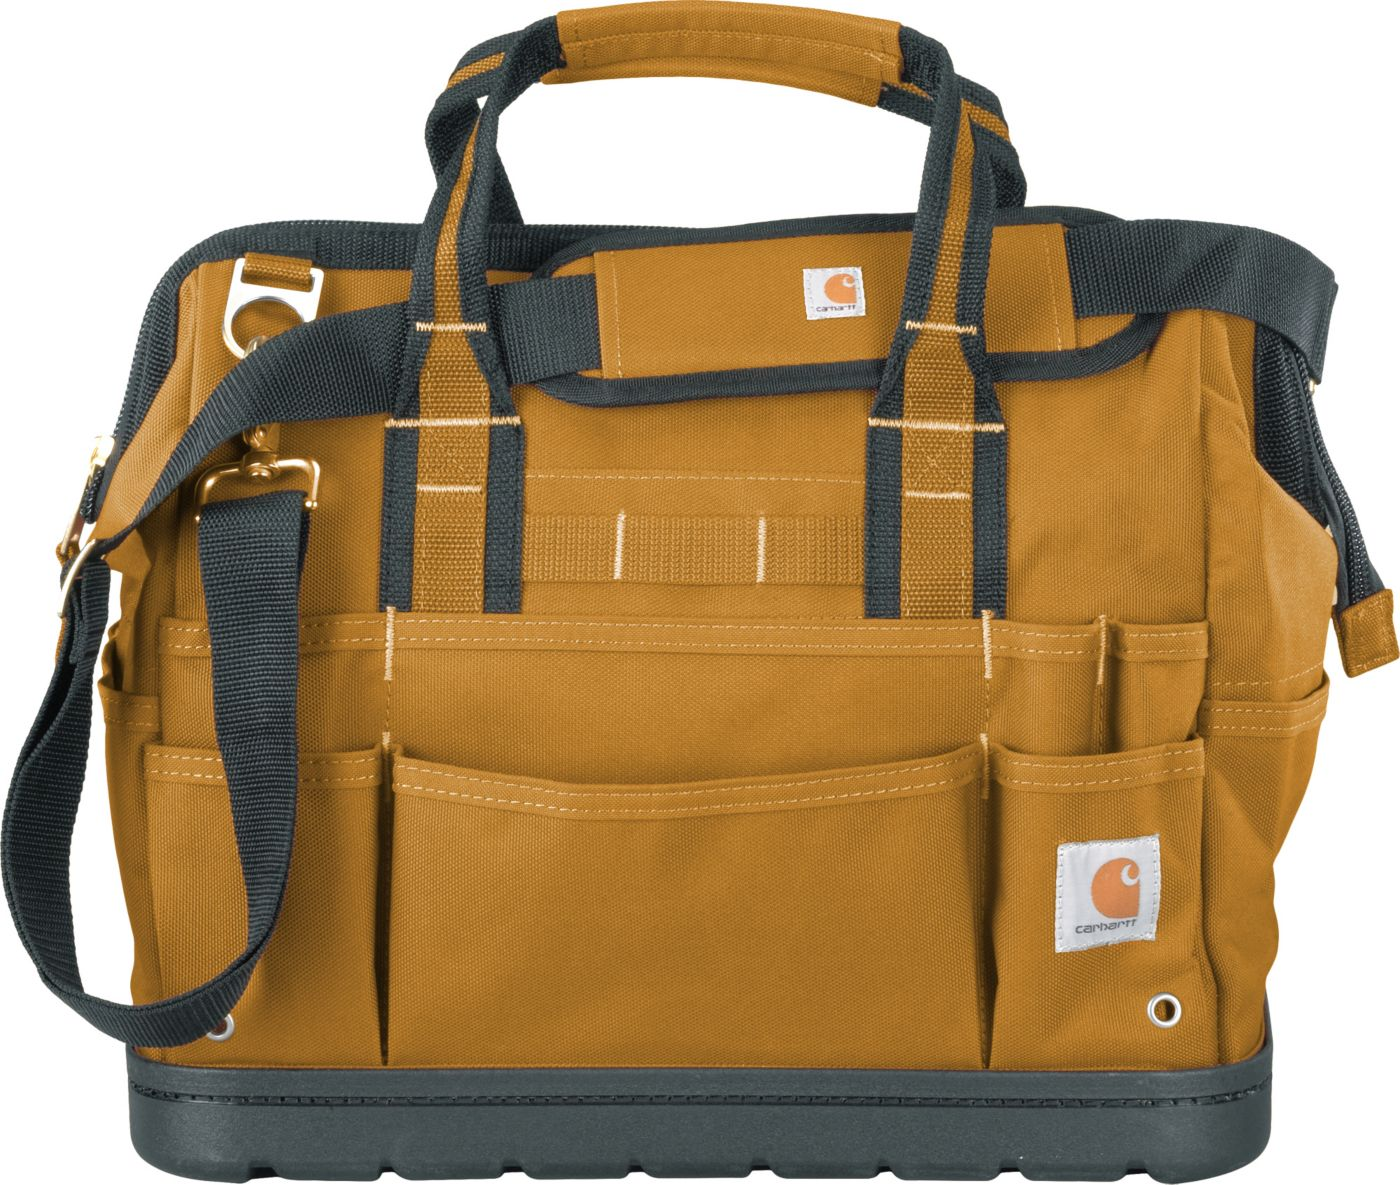 Carhartt Legacy 16'' Tool Bag with Molded Base